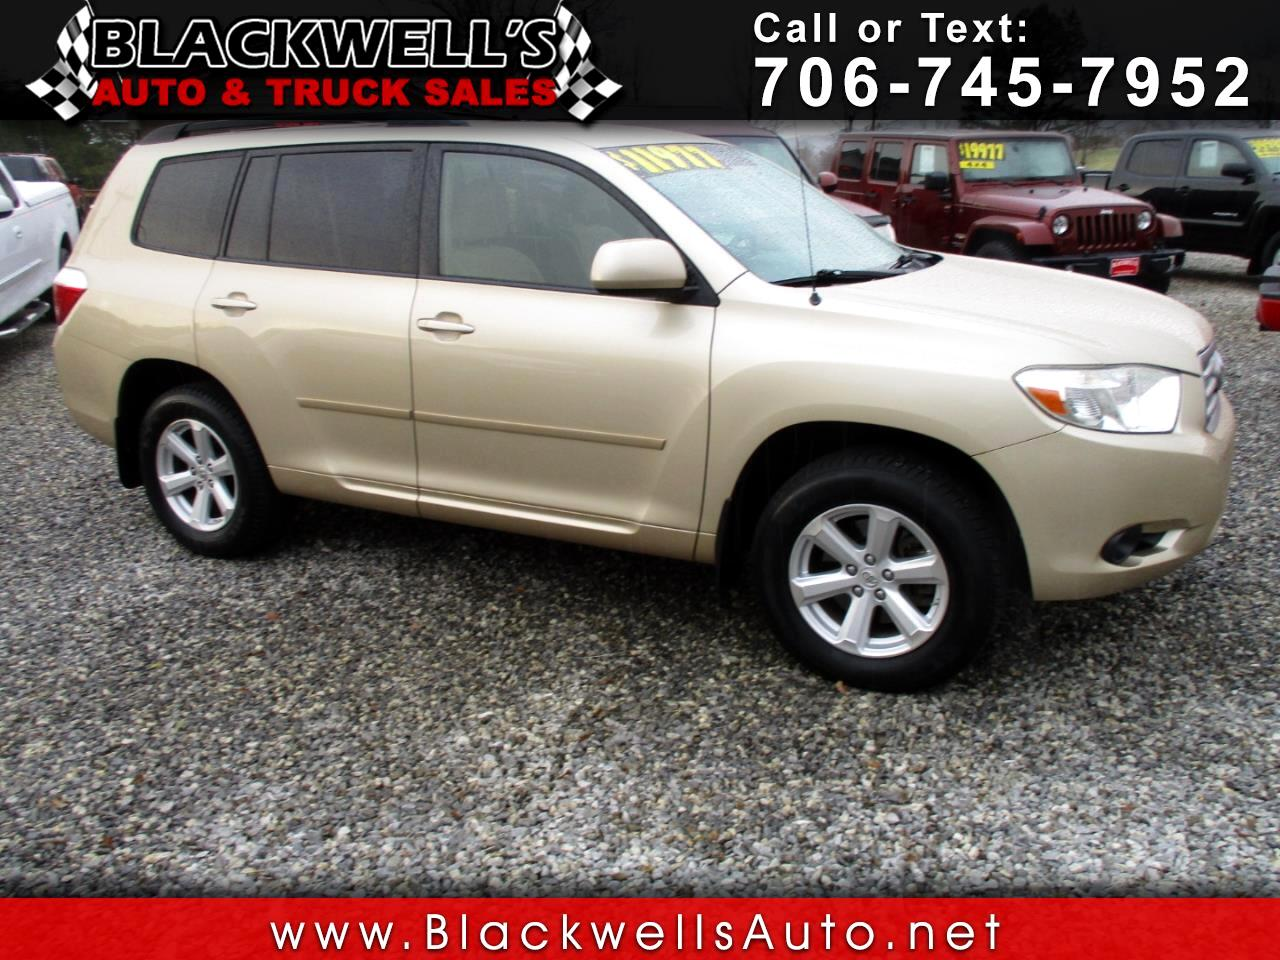 2009 Toyota Highlander FWD 4dr V6 Base (Natl)